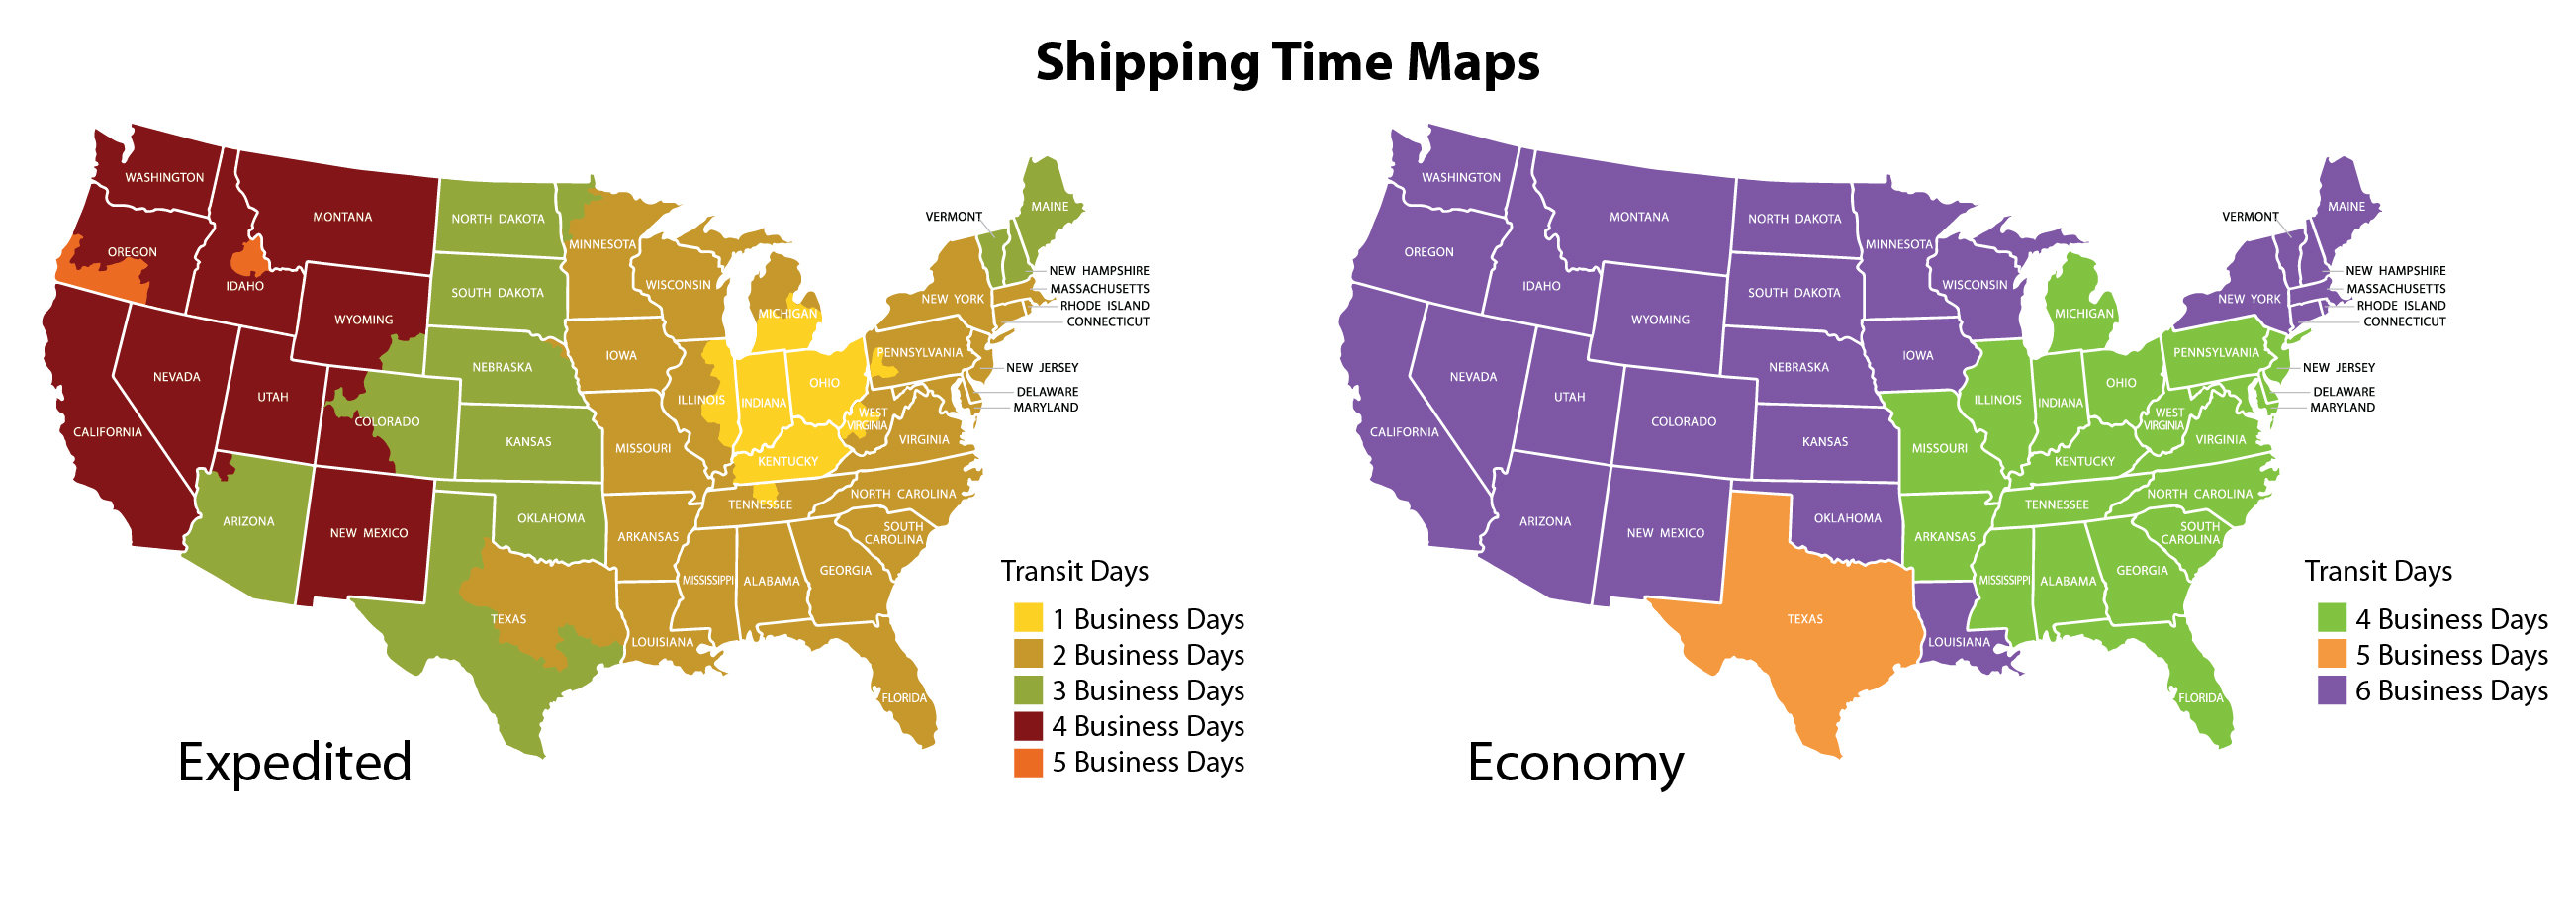 WH Candy Shipping Transit Time Map